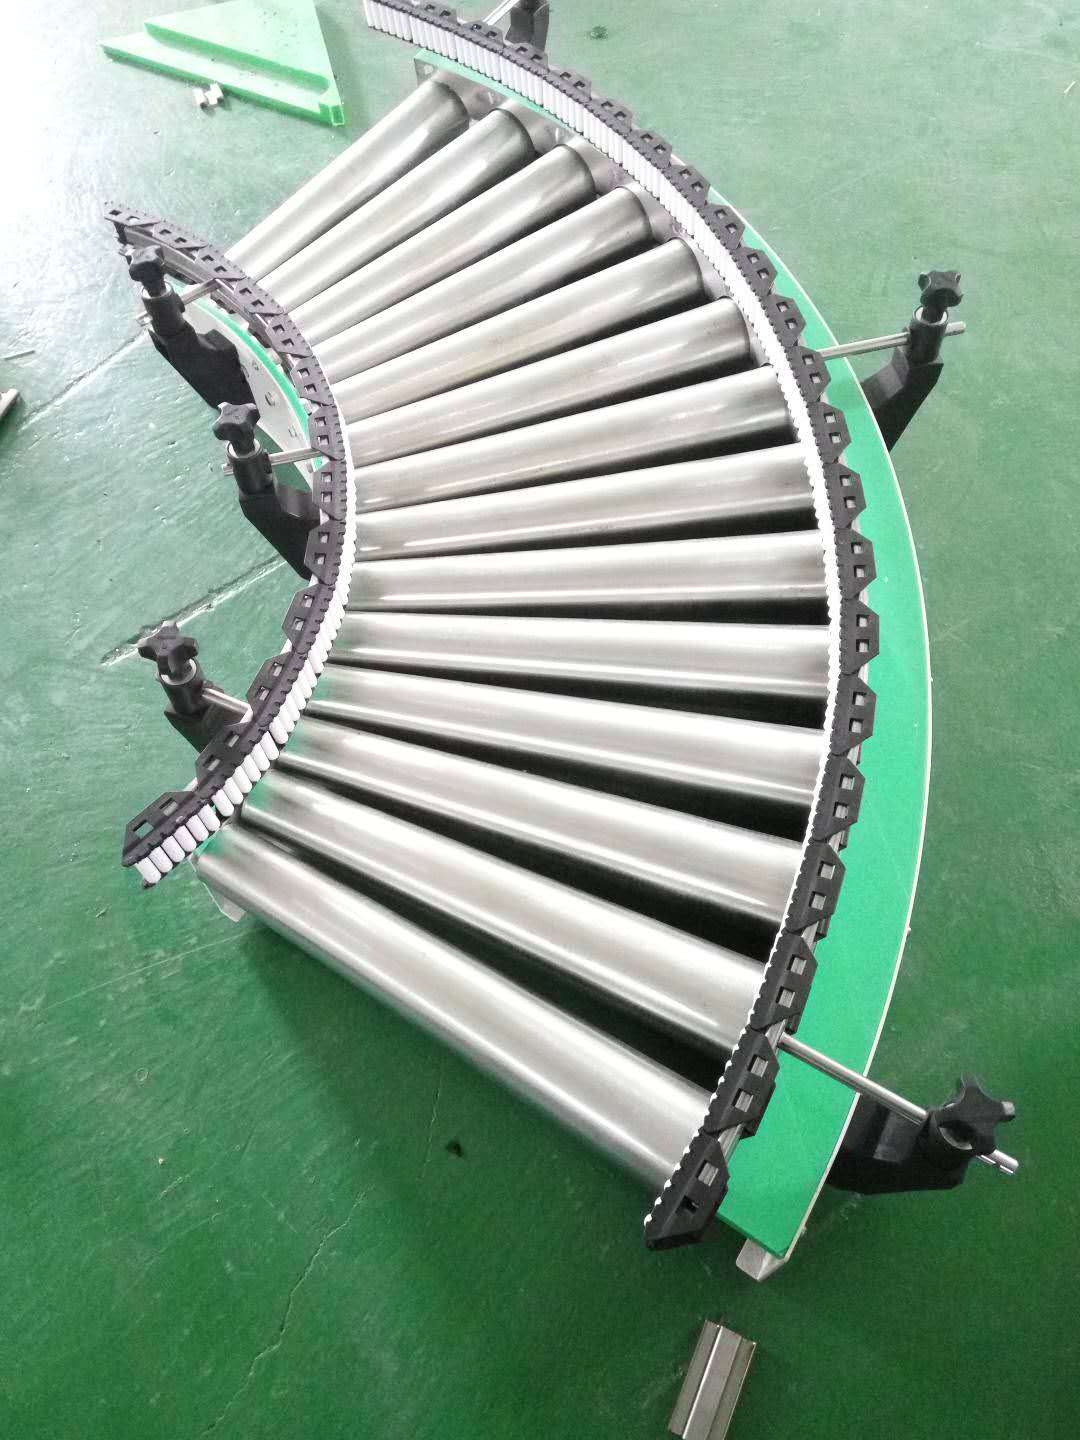 Hairise Curve Roller Conveyor with Stainless Steel Material